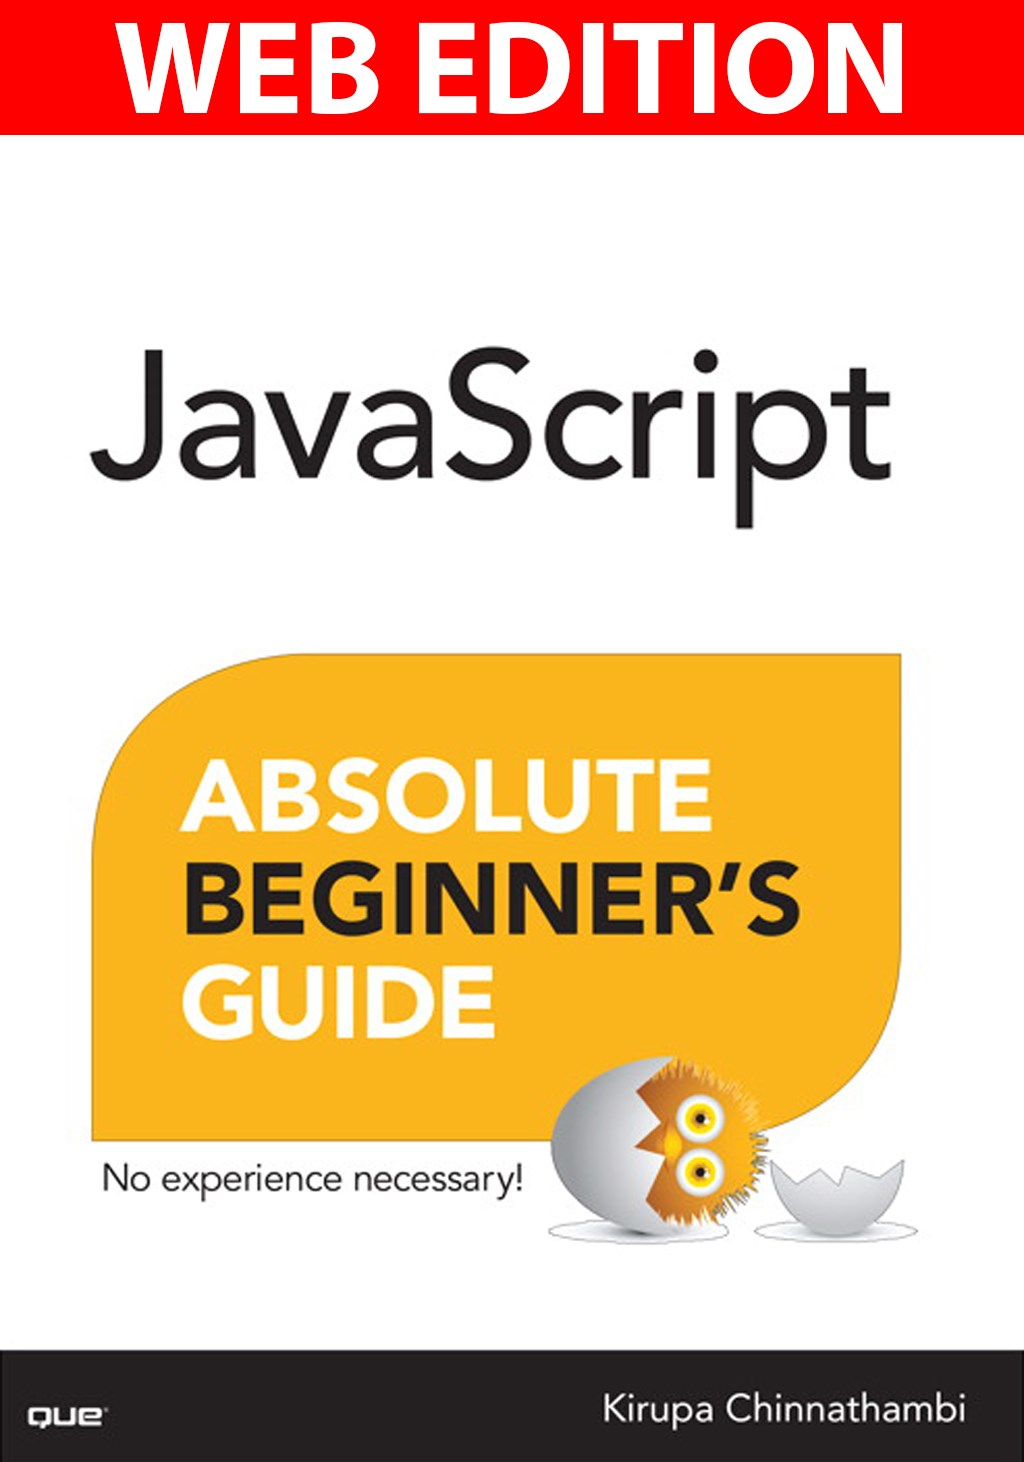 JavaScript Absolute Beginner's Guide, Web Edition